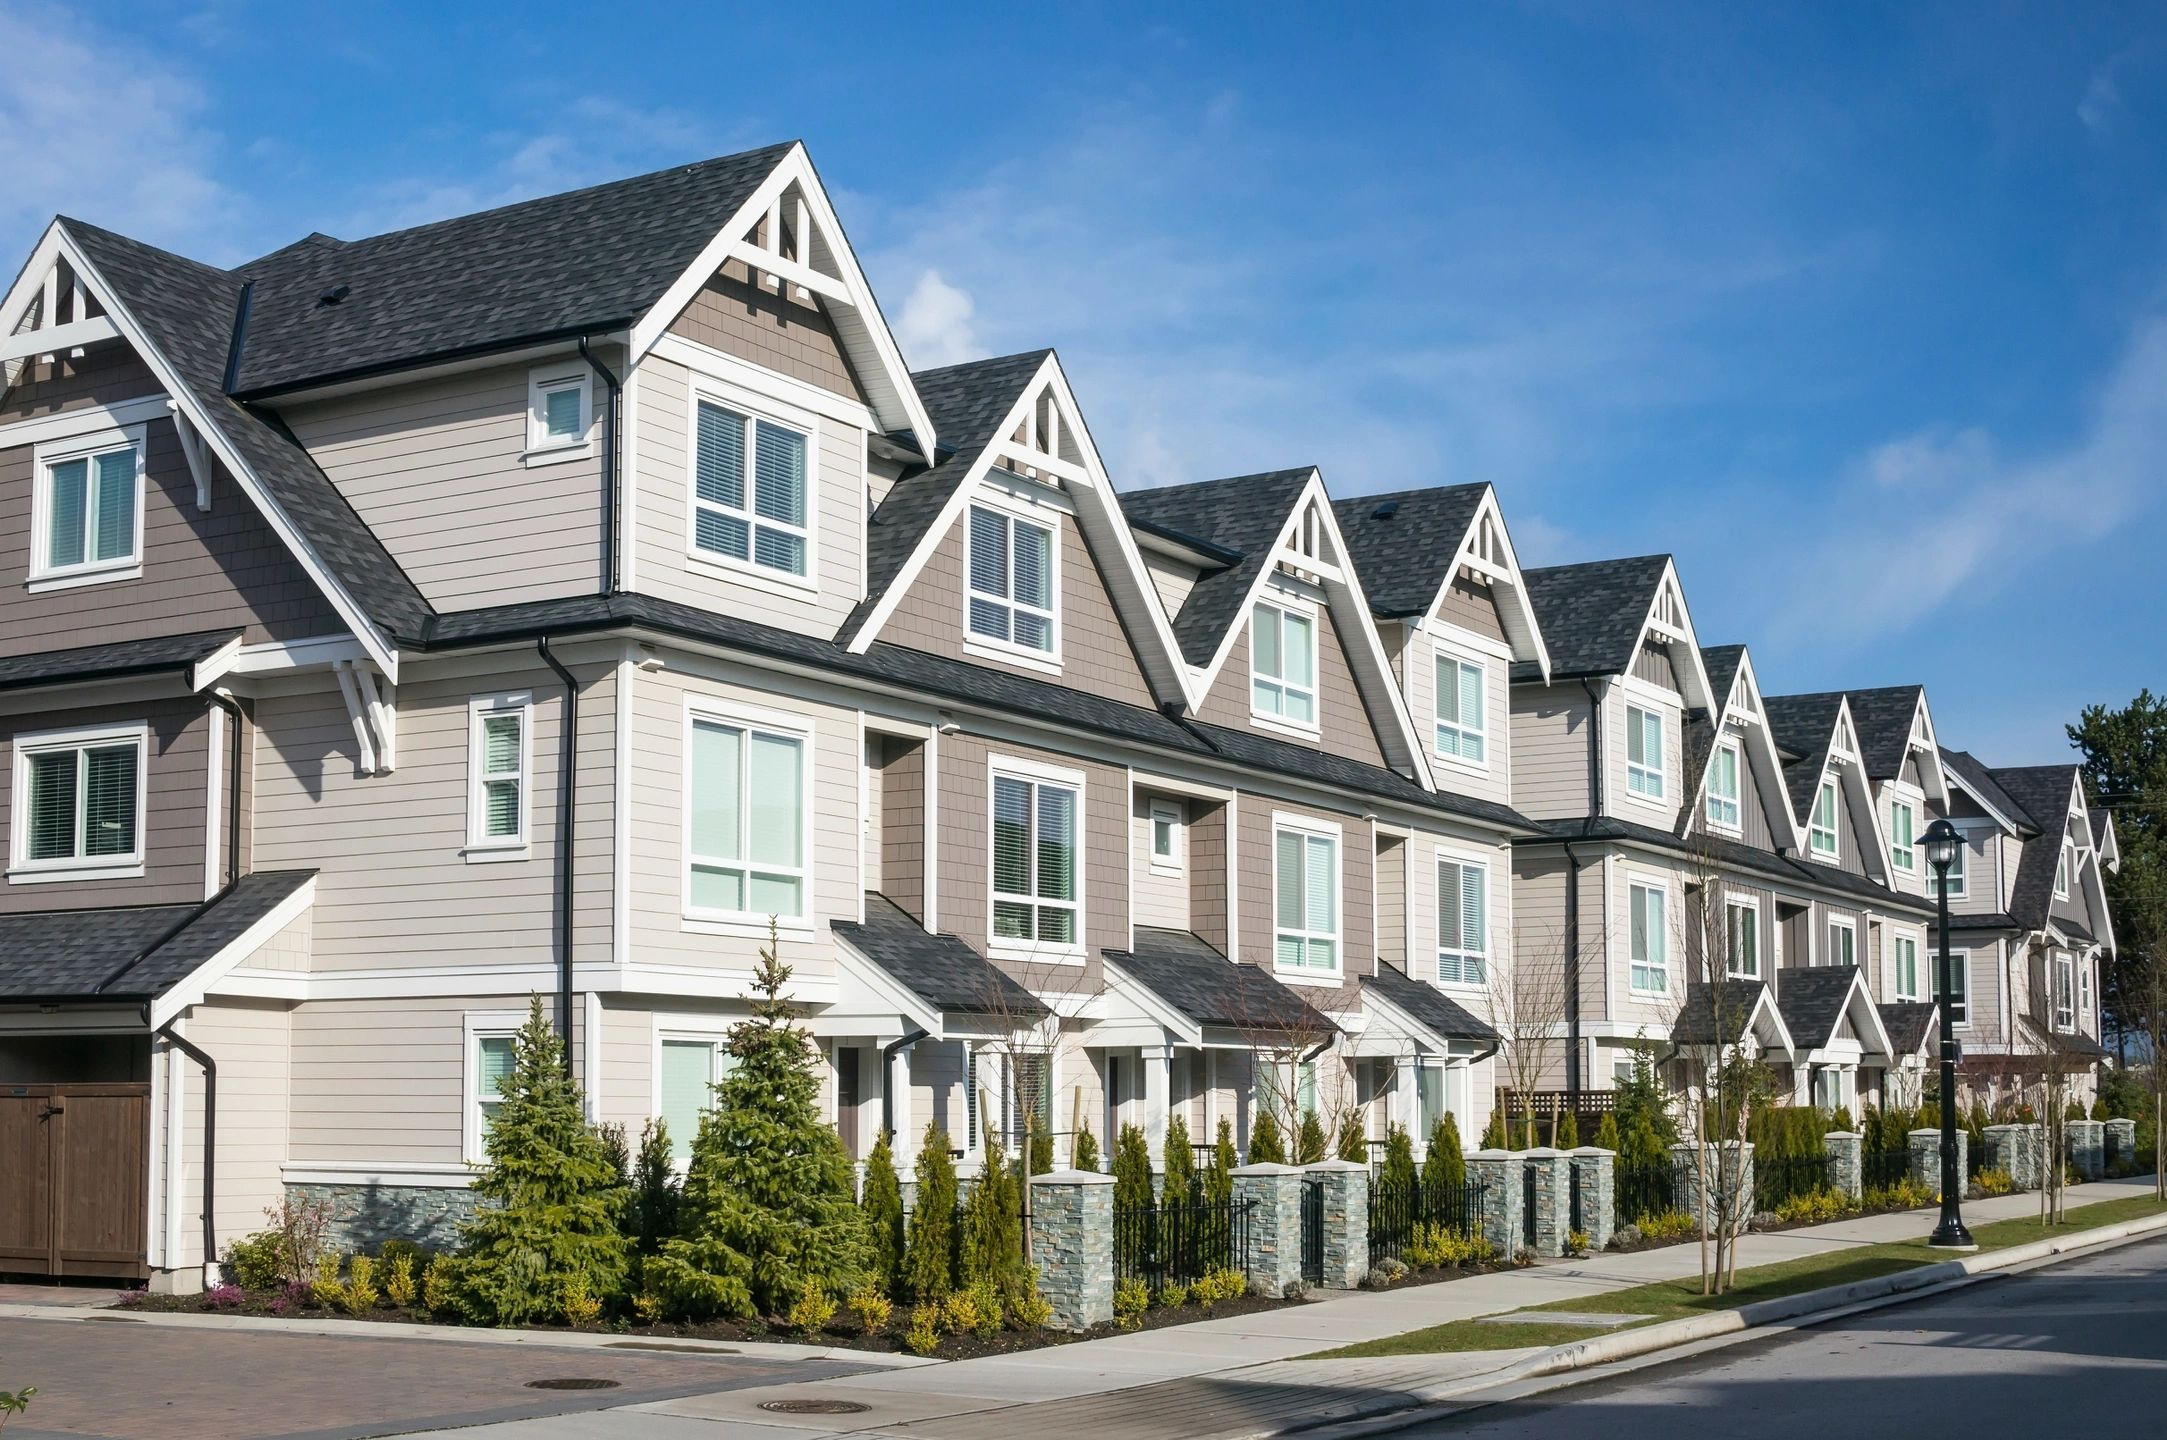 The Two Best Strategies to Get Started in Real Estate Investing